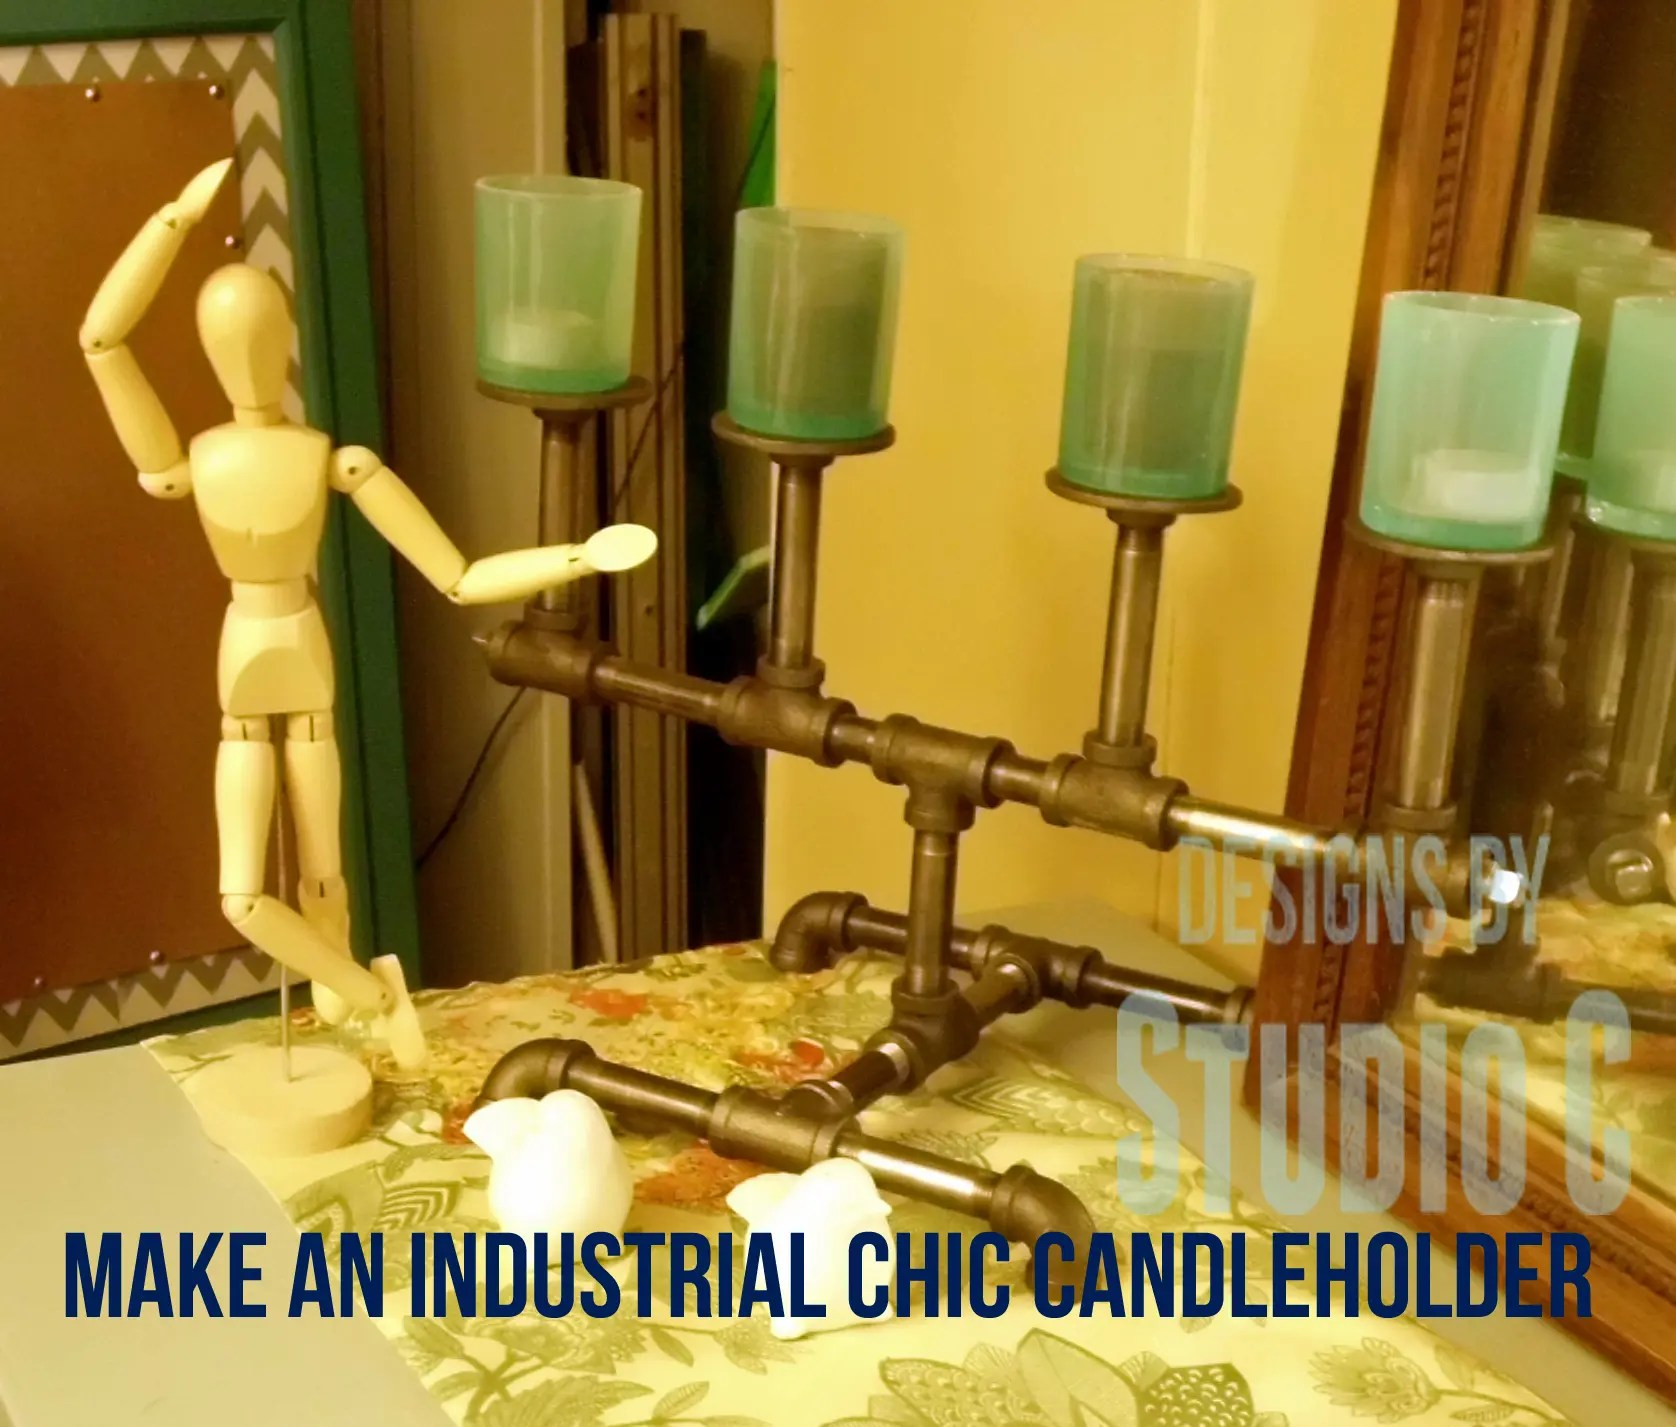 Industrial Chic Curtains Make An Industrial Chic Candleholder